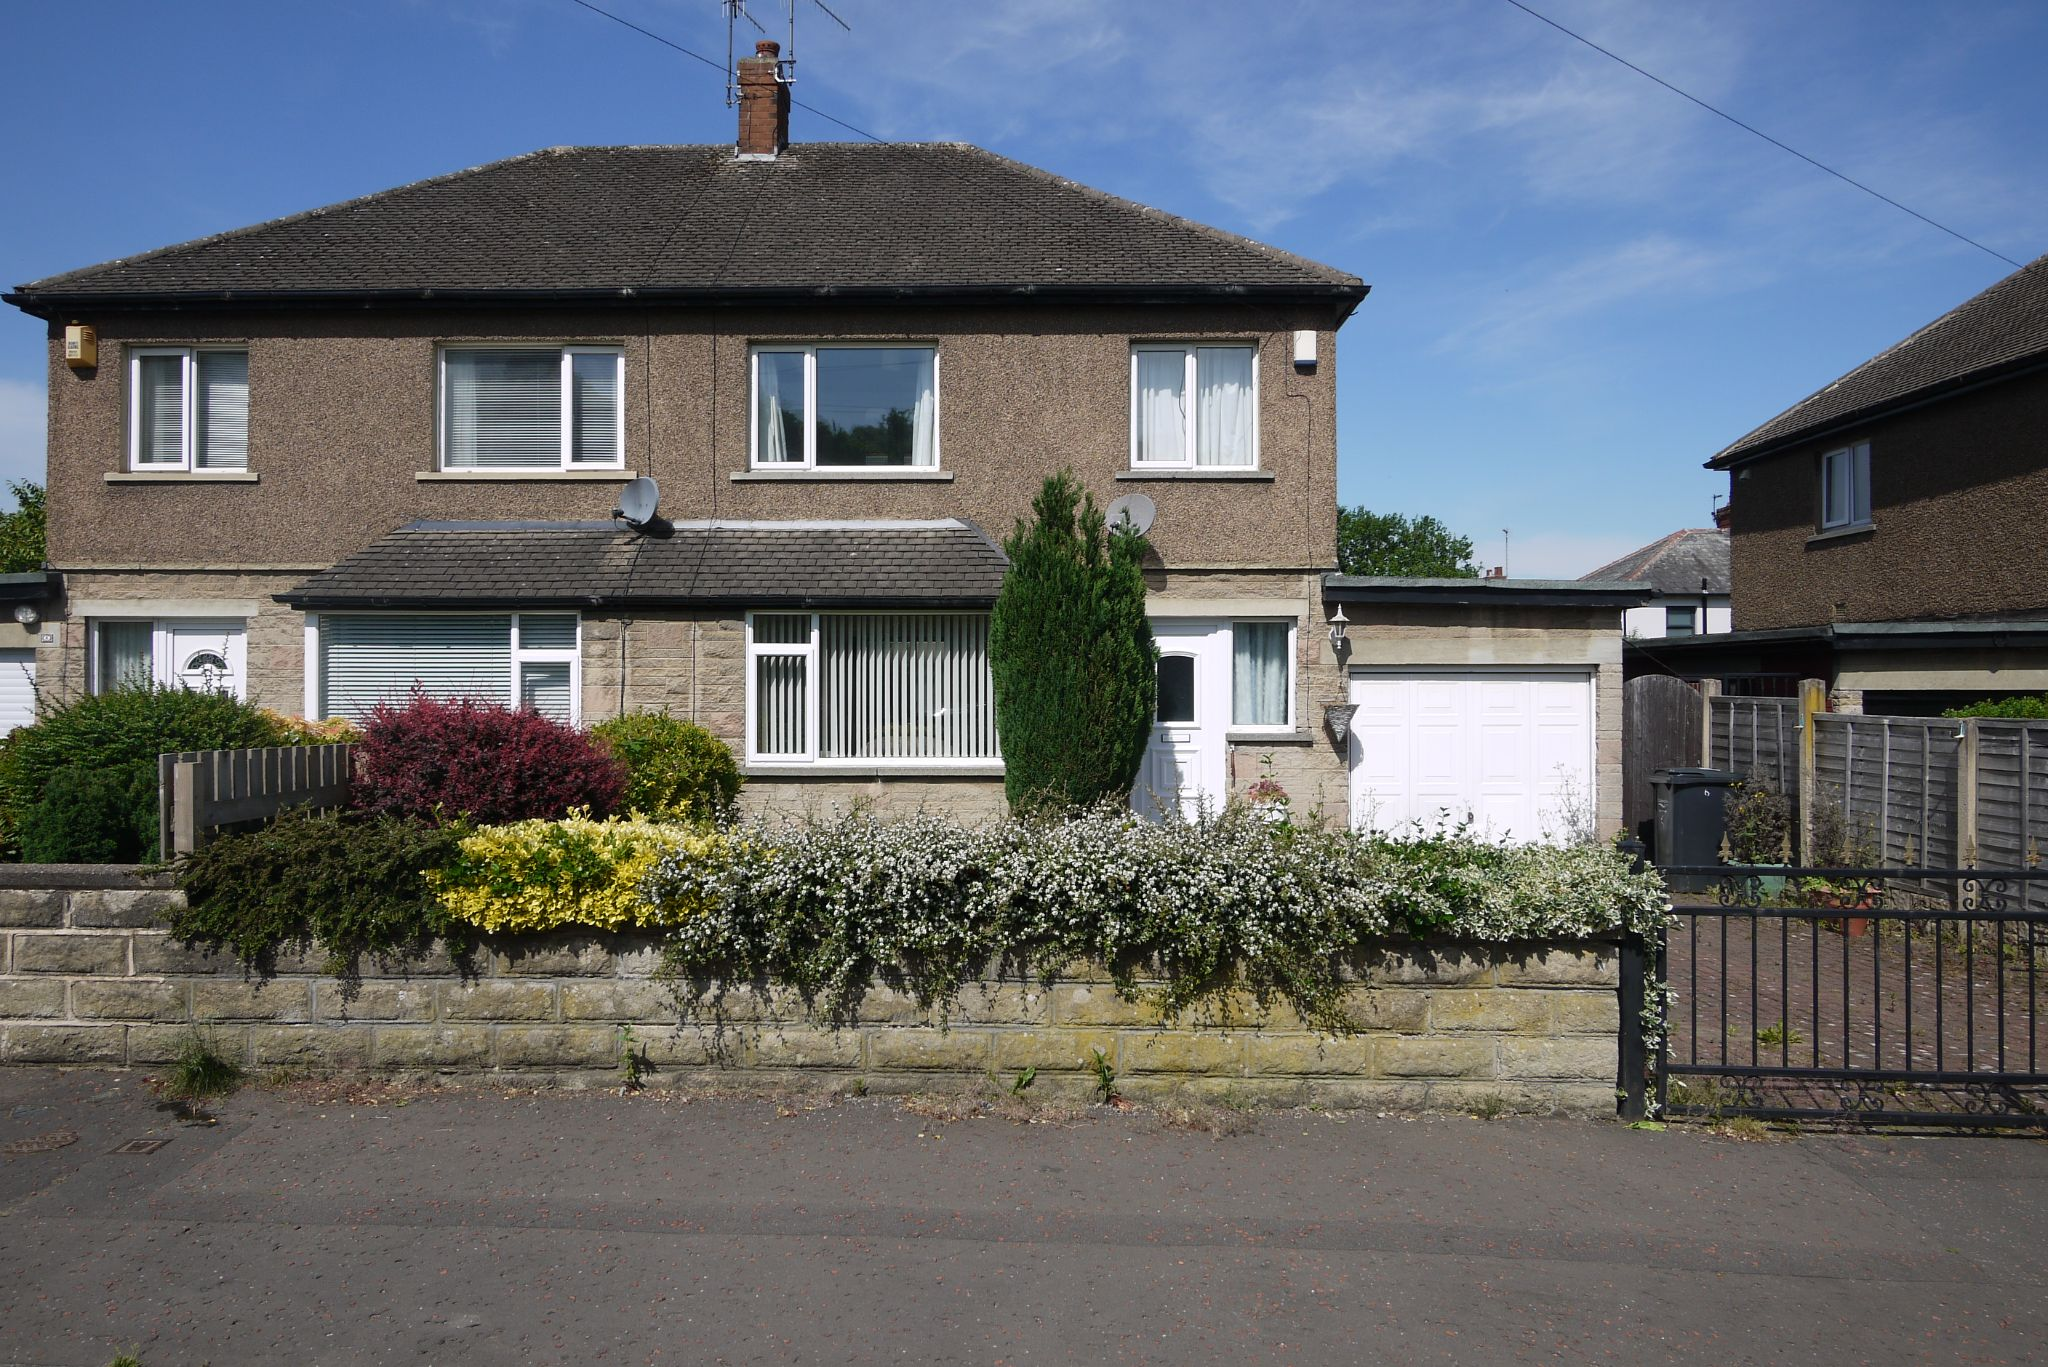 3 bedroom semi-detached house Sold in Brighouse - Photograph 1.